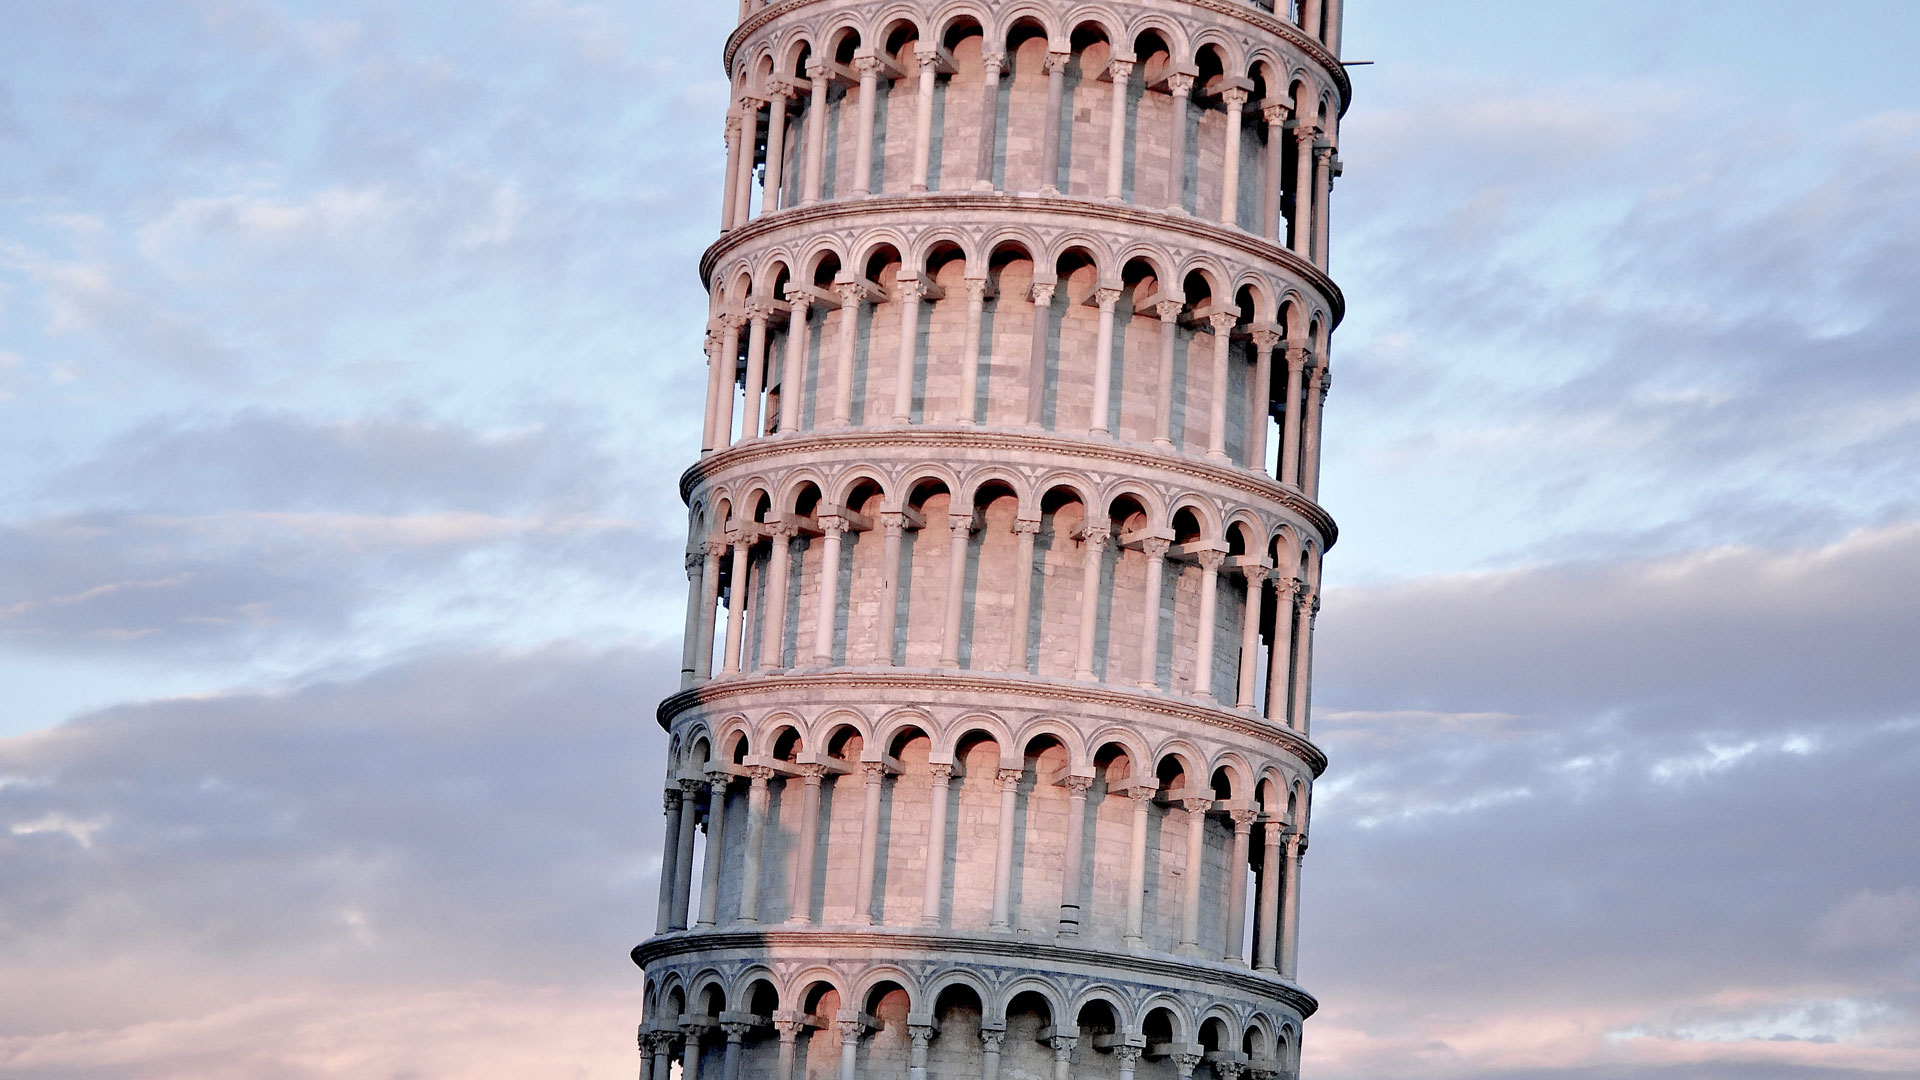 Pisa leaning tower picture